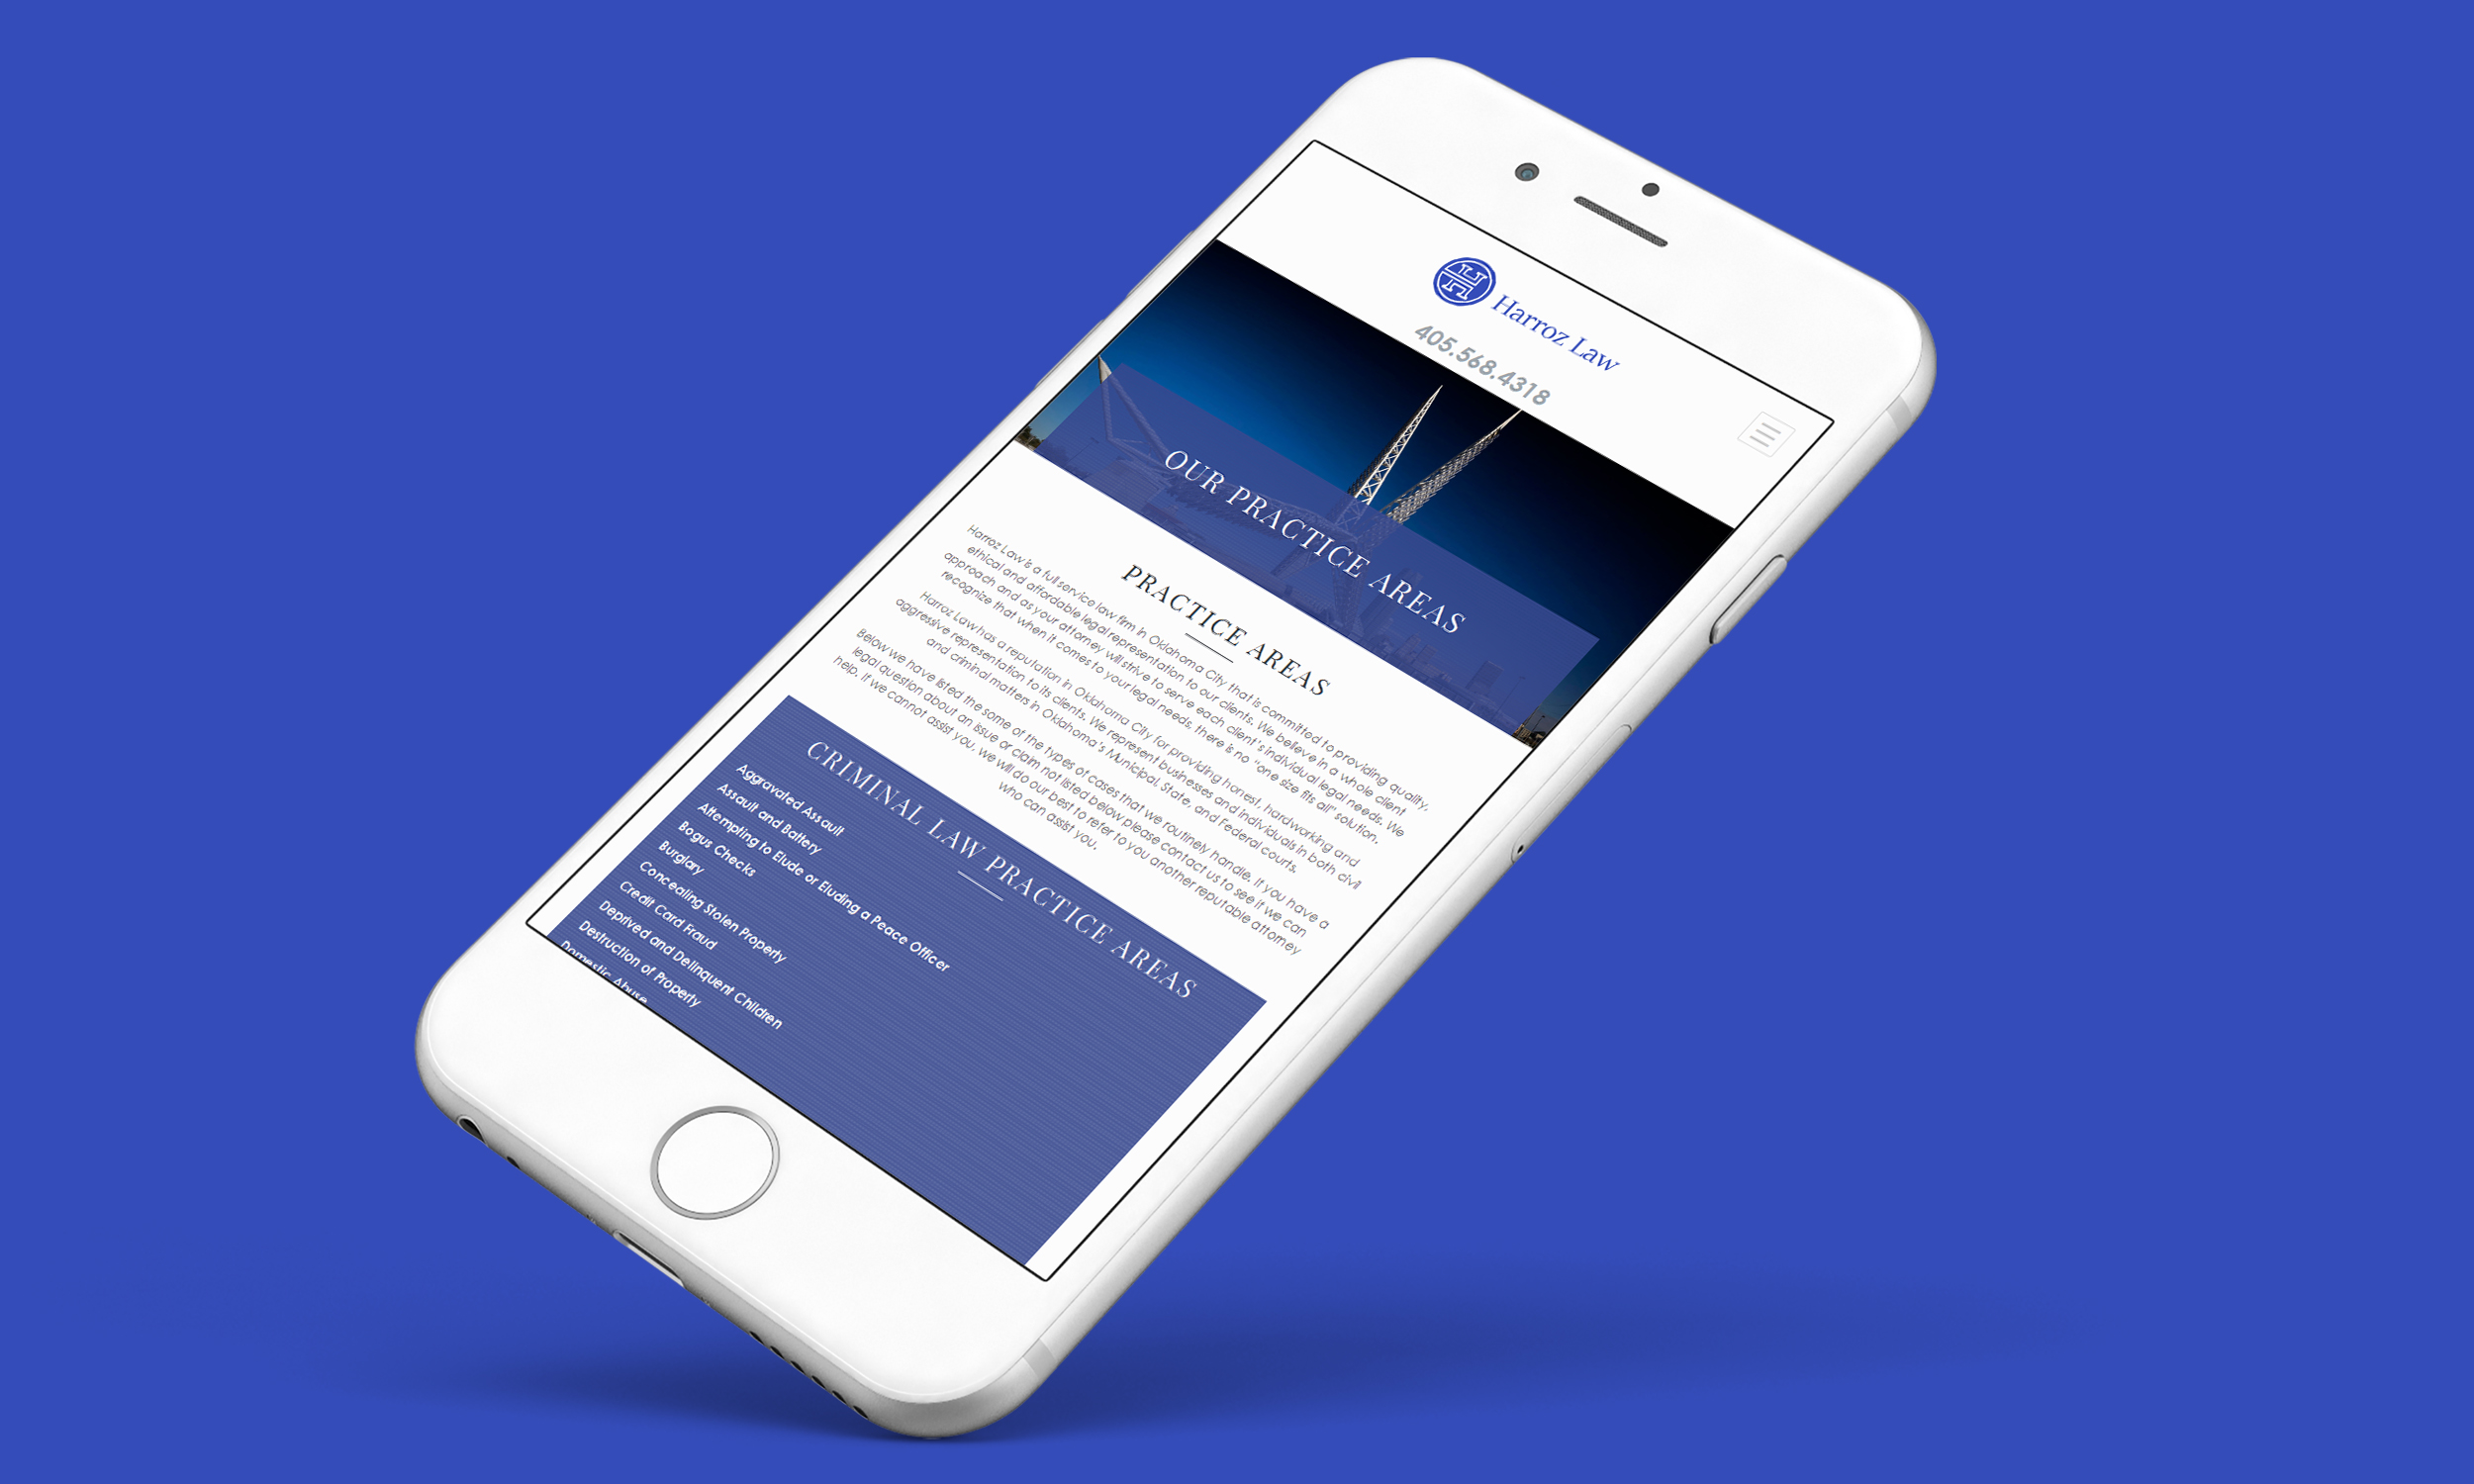 harroz law practice areas iphone mockup